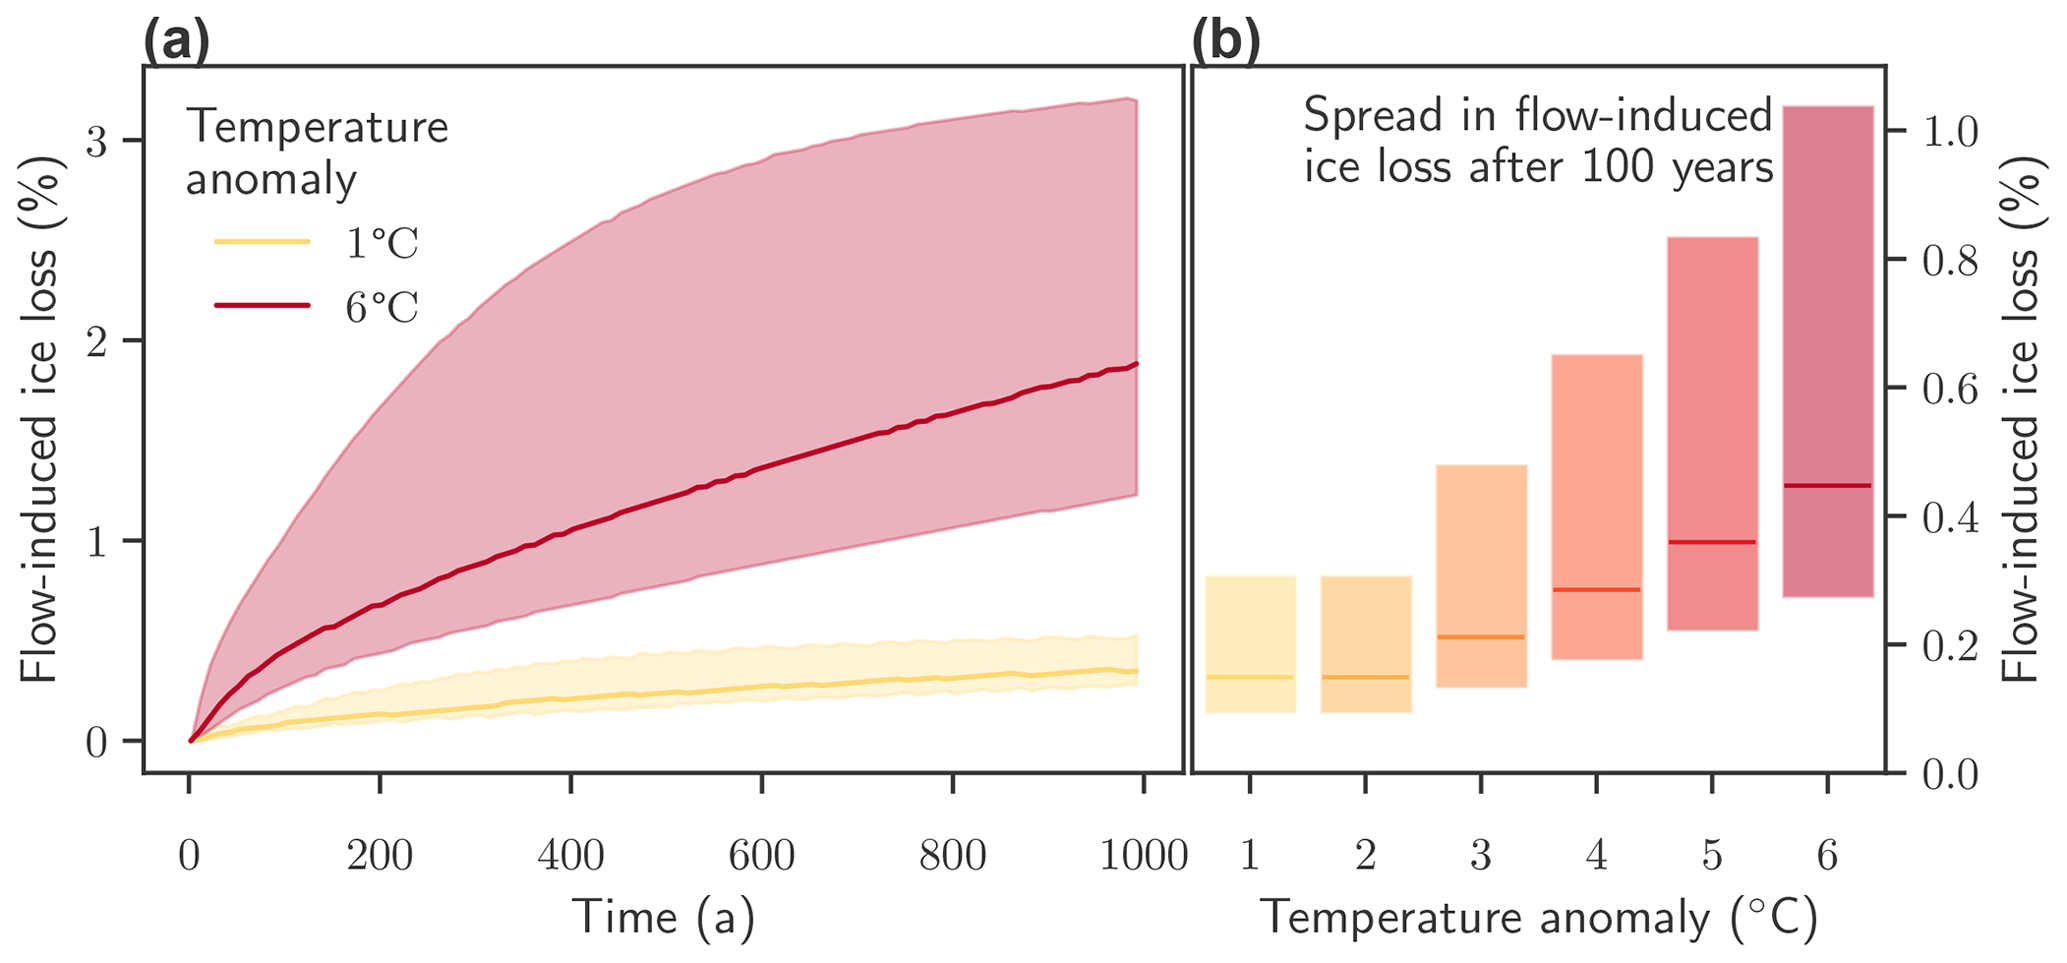 2020/10/27: New study on the sensitivity of ice loss due to flow law parameters uncertainty